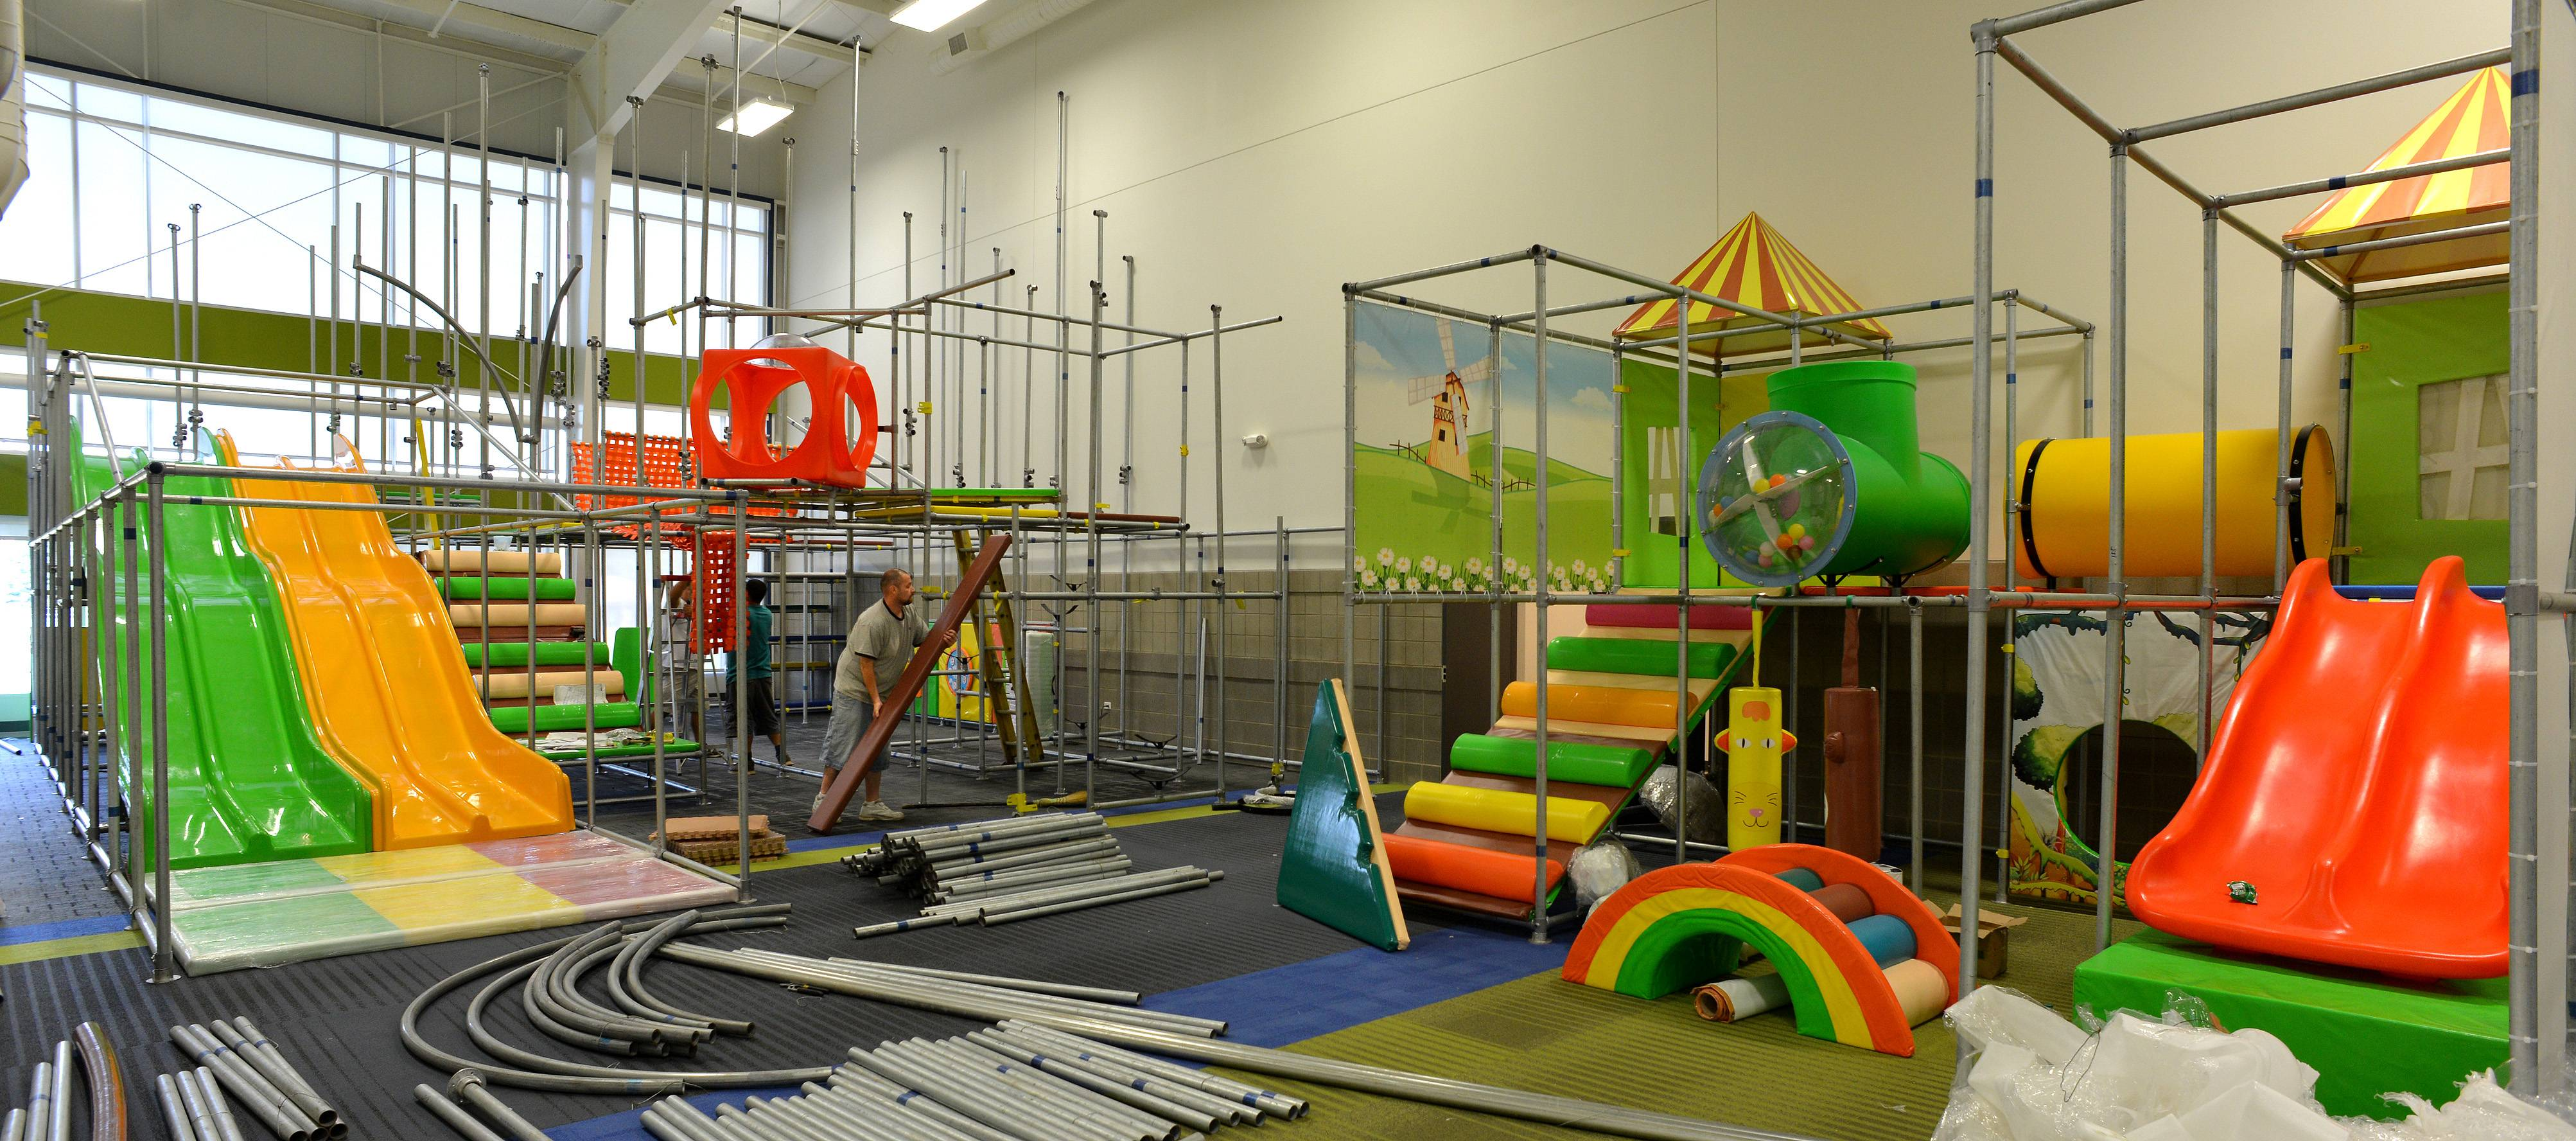 Crews still were putting the finishing touches last week on what will be an extensive children's play area in the ARC Center.